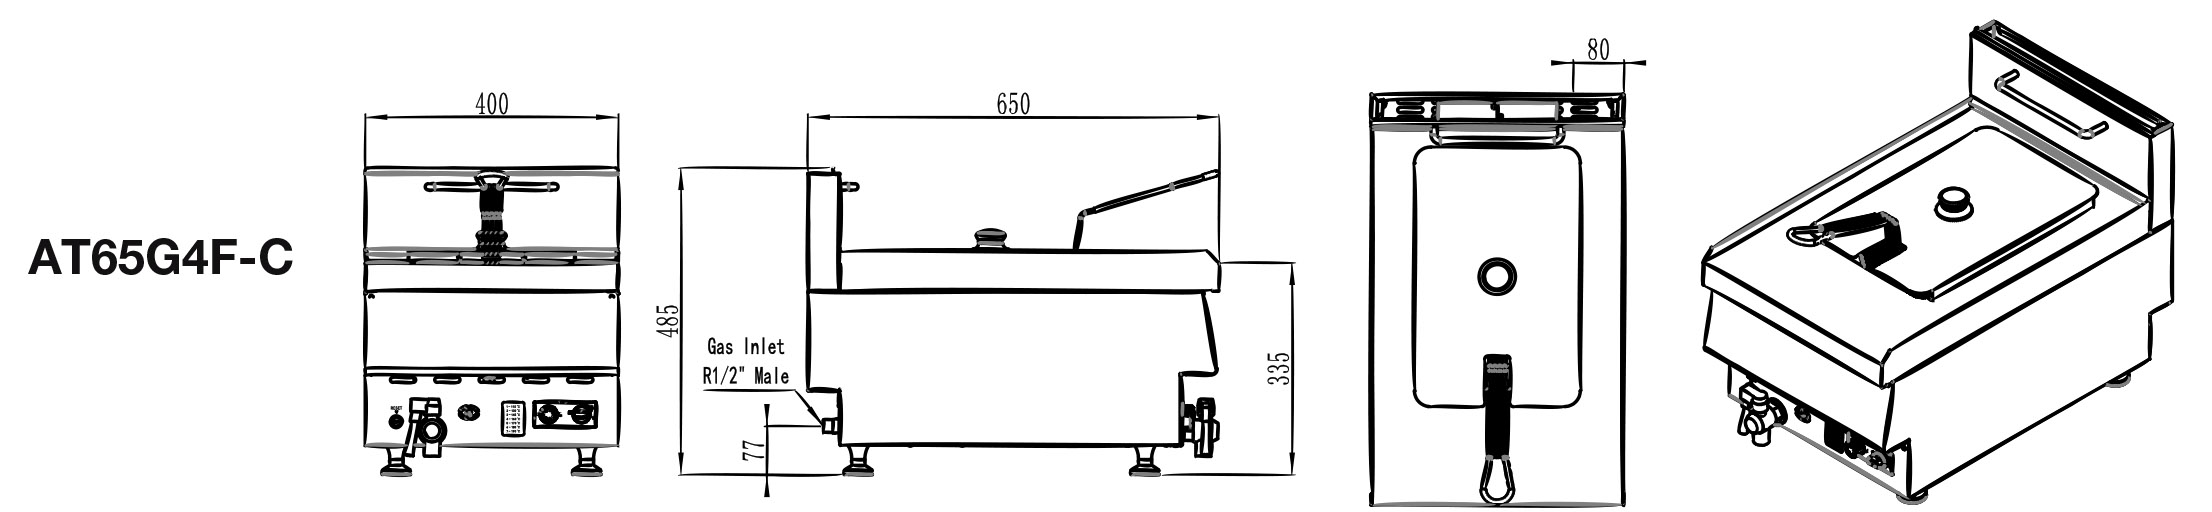 Commercial Benchtop Fryer Dimensions